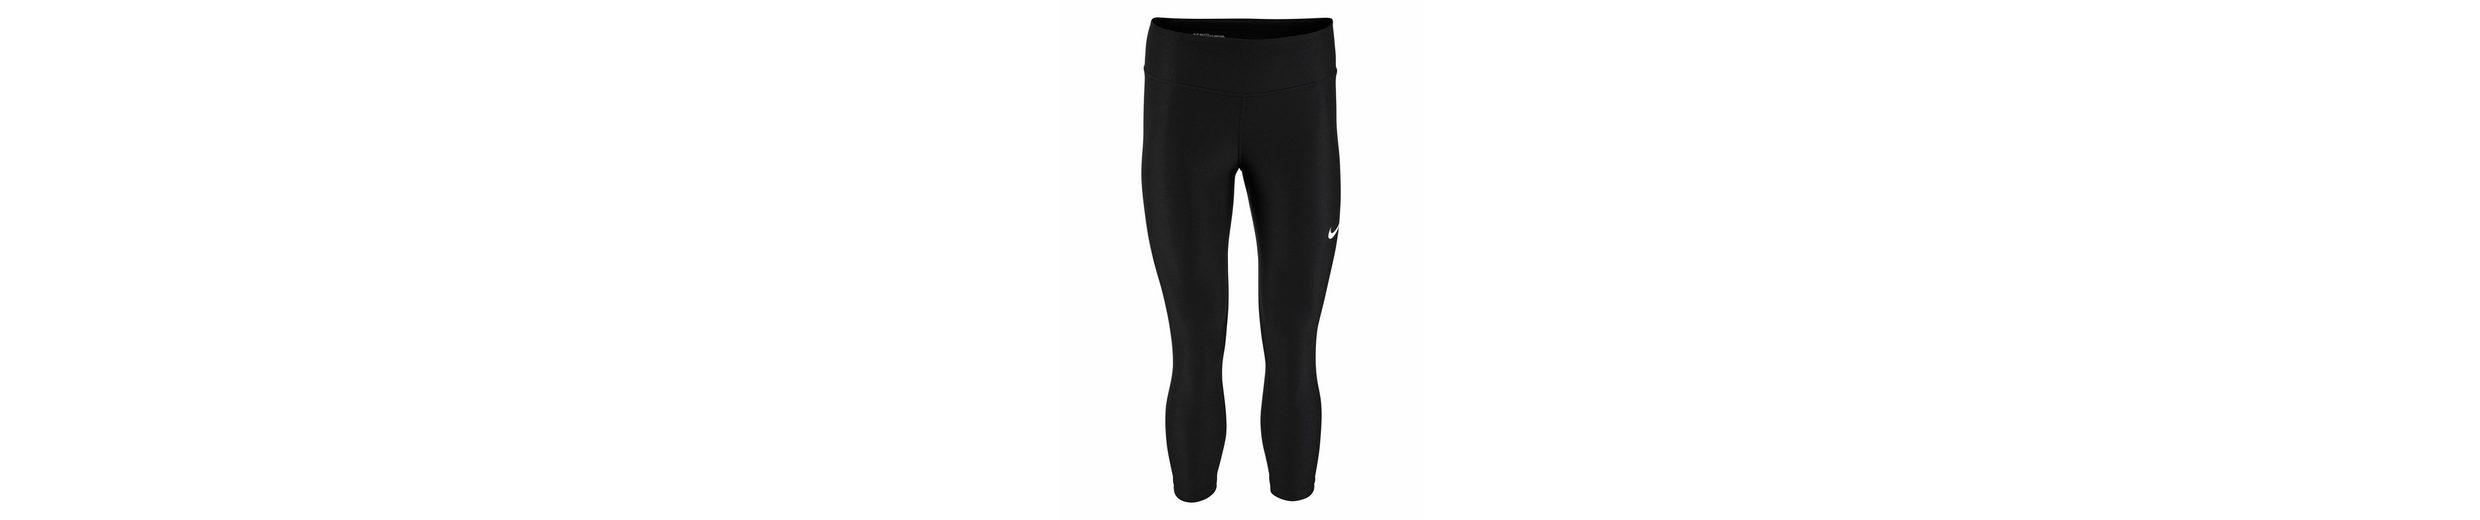 Nike Funktionstights POWER VICTORY CROP Günstiges Shop-Angebot gjQ4Ag